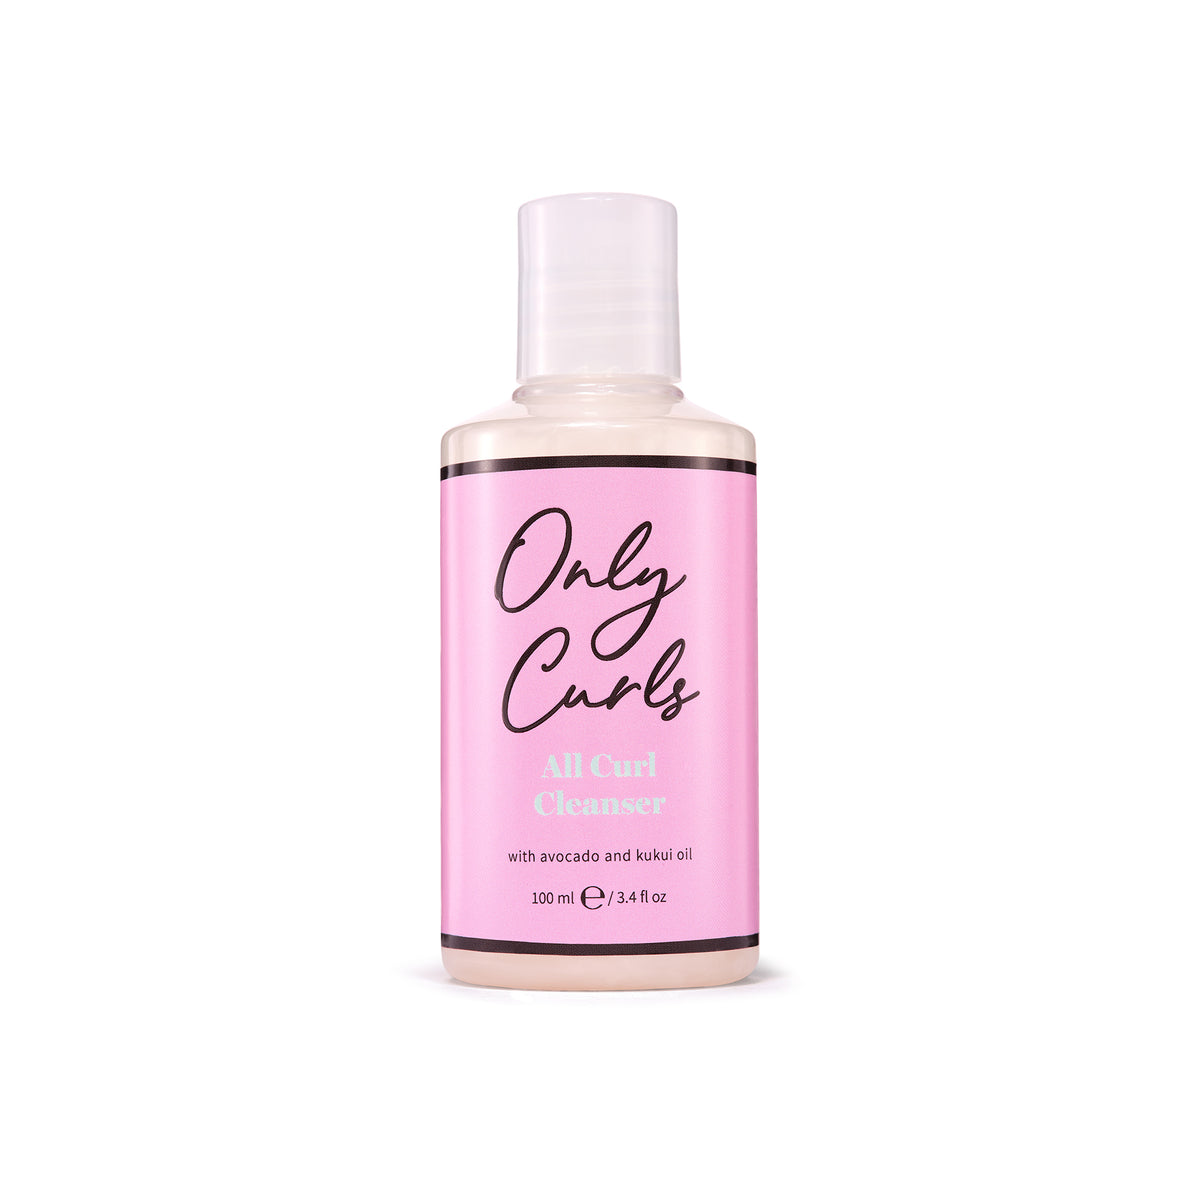 Only Curls All Curl Cleanser Travel Mini 100ml - Only Curls